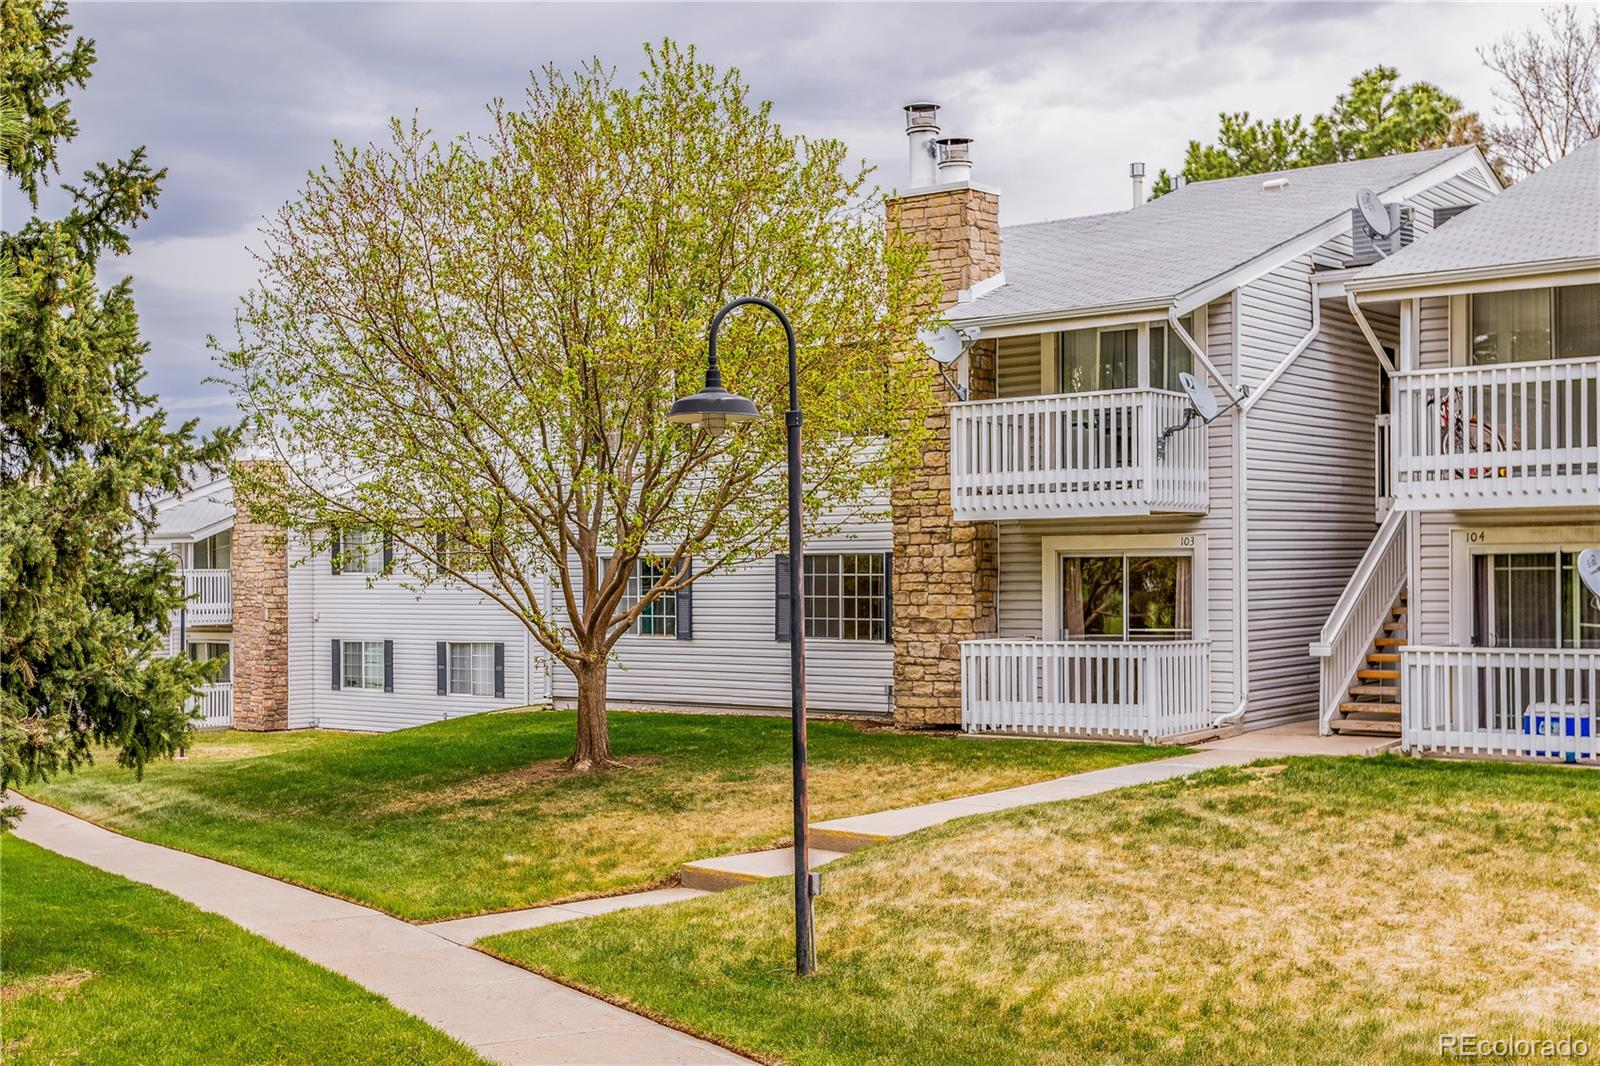 One of the best Locations in this sun-filled ground floor, corner unit in Brandychase! This West Facing condo is located on the Greenbelt and is steps to the Outdoor Pool and Tennis Courts!  Stainless Steel Appliances, Granite Counters, and Newer Cabinetry! Updated and ready for you to Move In and Enjoy. In Unit Laundry Room and Plenty of Closet Space with Additional Storage in the Detached Garage. Reserved Parking Space is Conveniently Located right next to the building. A 1 Mile Drive to the Florida Station light Rail and Easy Access to the I-225 Corridor make this the Perfect Property!